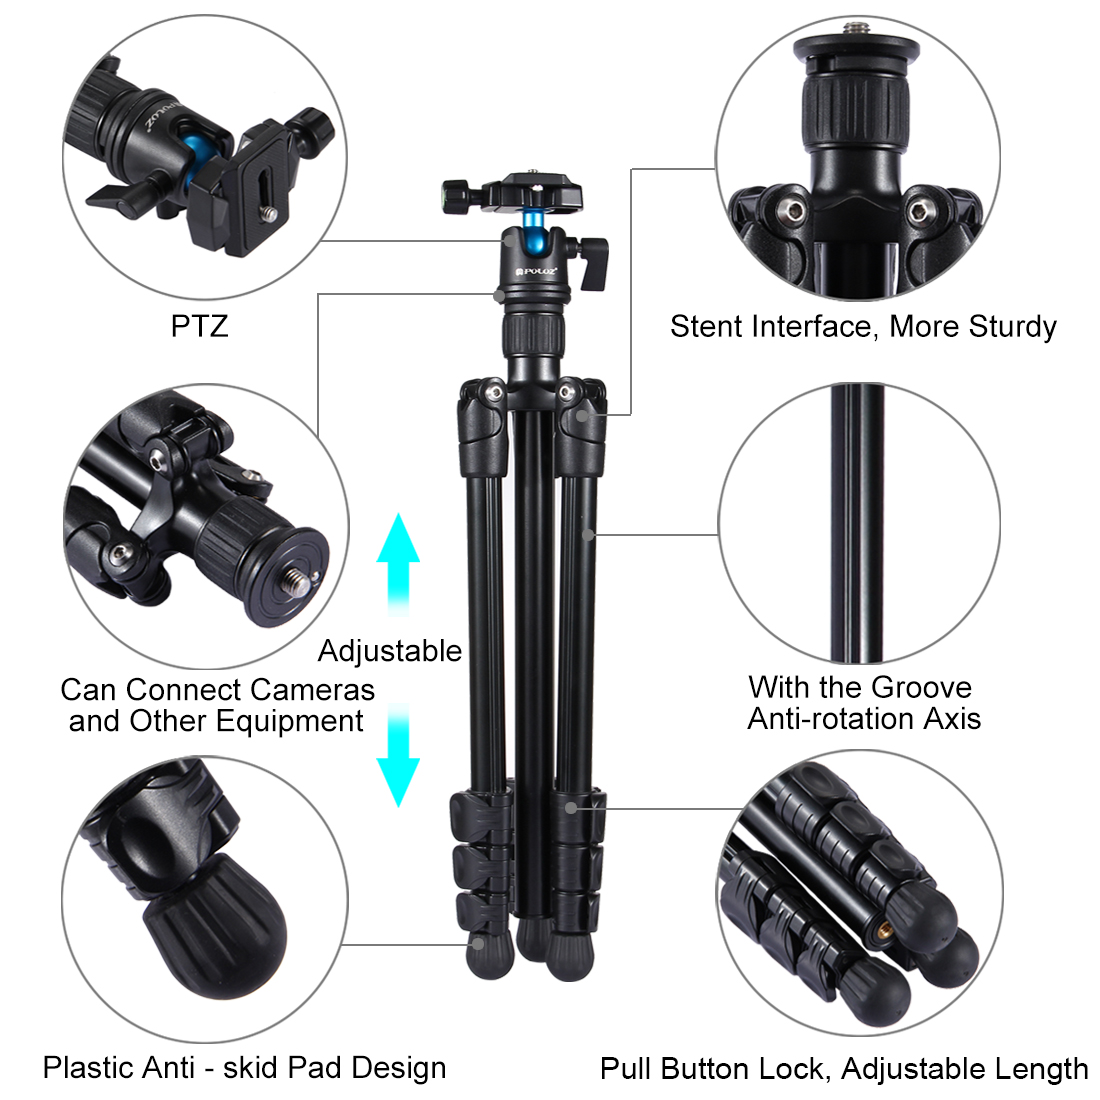 PULUZ PU3009 4-Section Folding Legs Metal Tripod Mount with 360 Degree Ball Head for DSLR Camera